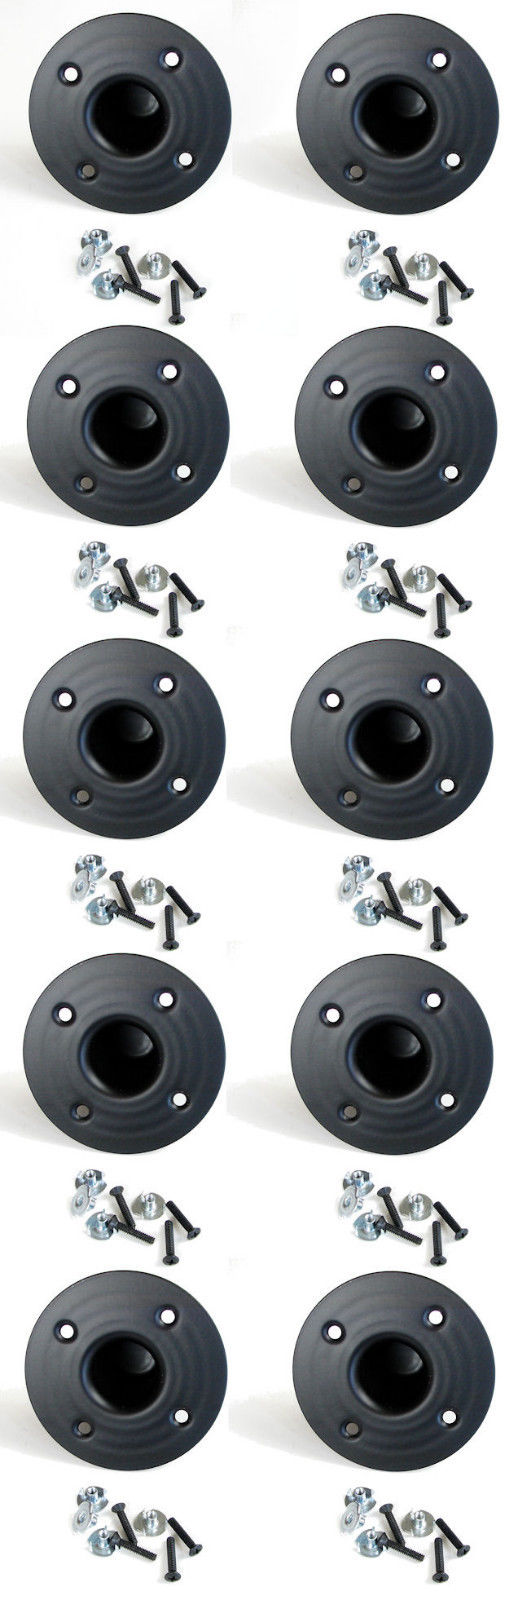 10 Pack Penn Elcom M1551 Steel Pole Mount W/Hardware - Stand Cup - Top Hat